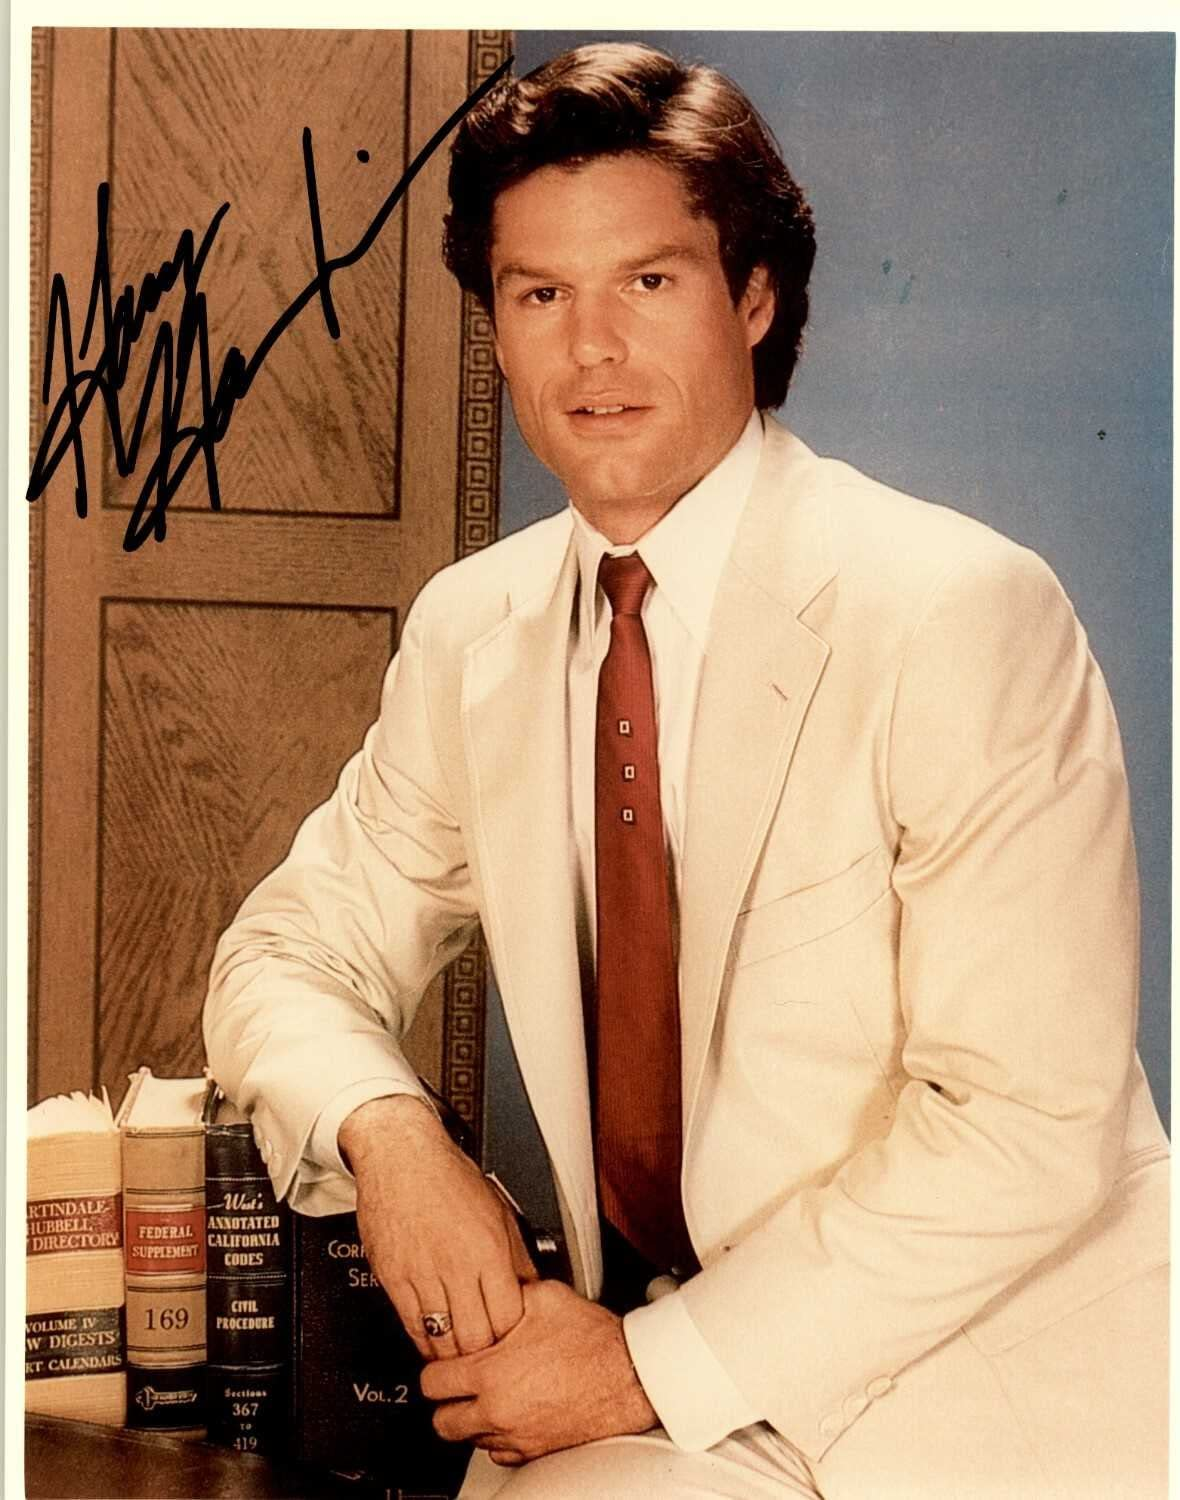 """Harry Hamlin Signed Autographed """"L.A. Law"""" Glossy 8x10 Photo - COA Matching Holograms"""